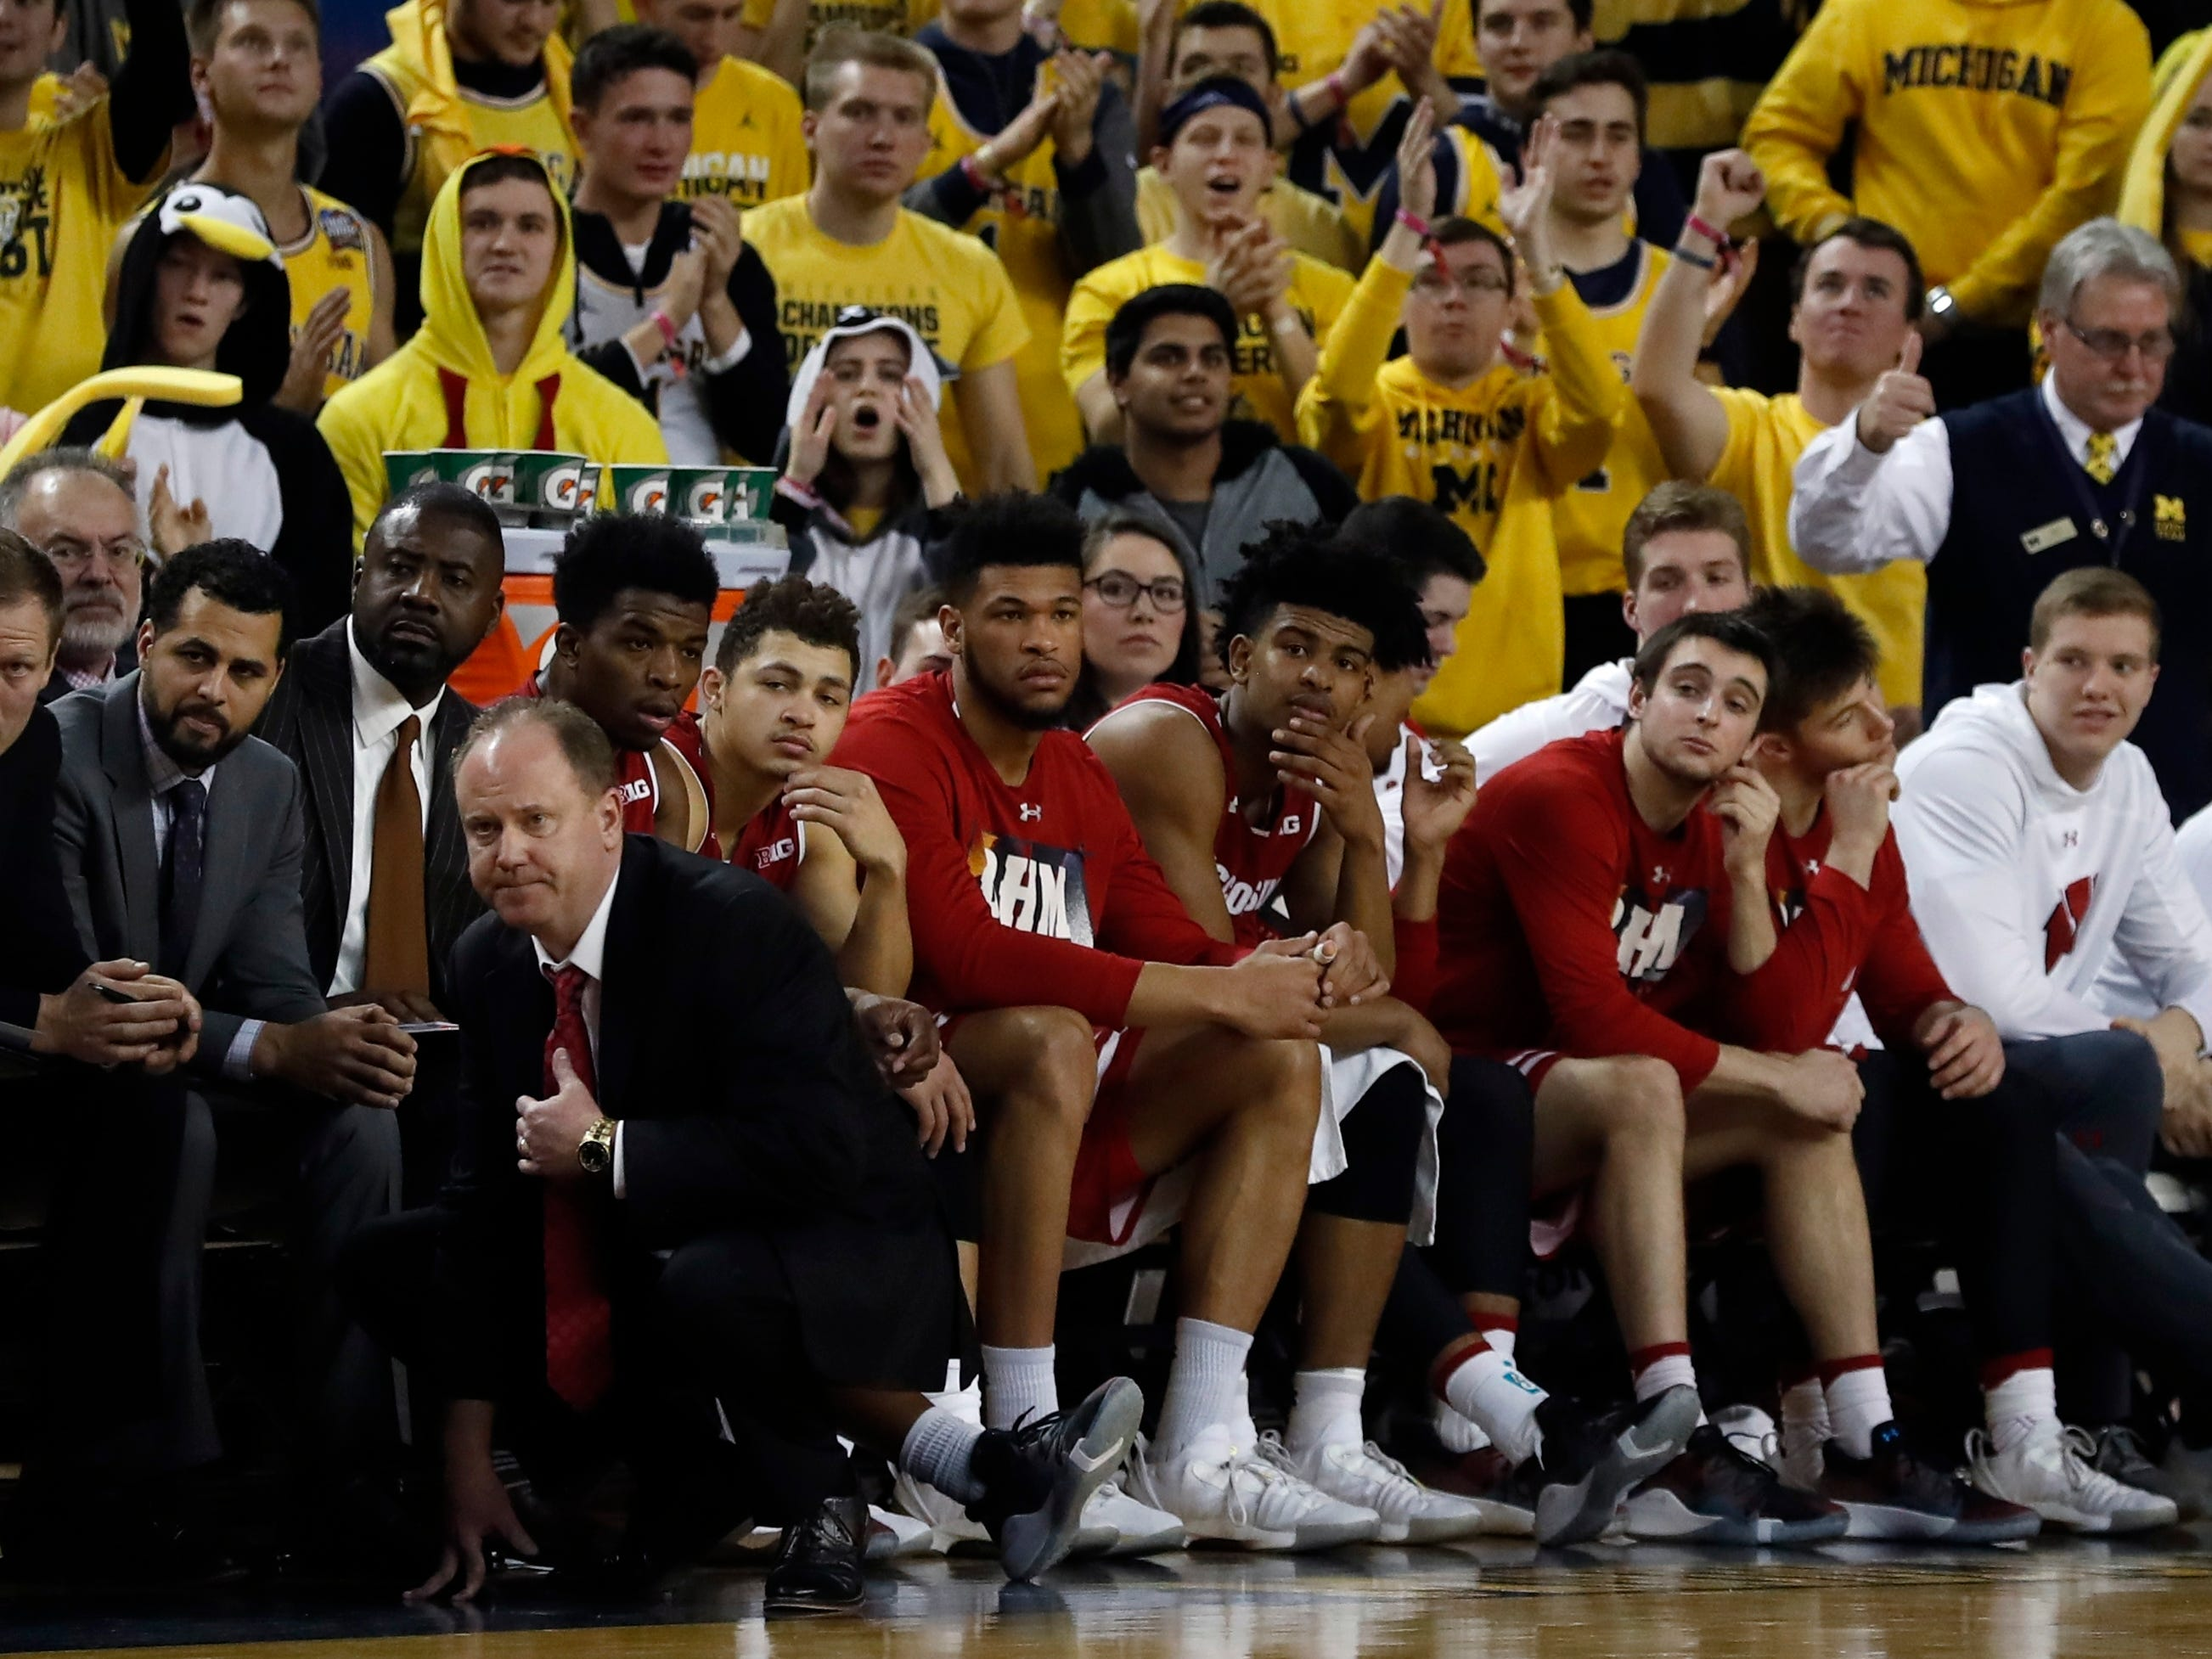 The Wisconsin bench watches during the closing seconds of the second half on Saturday.